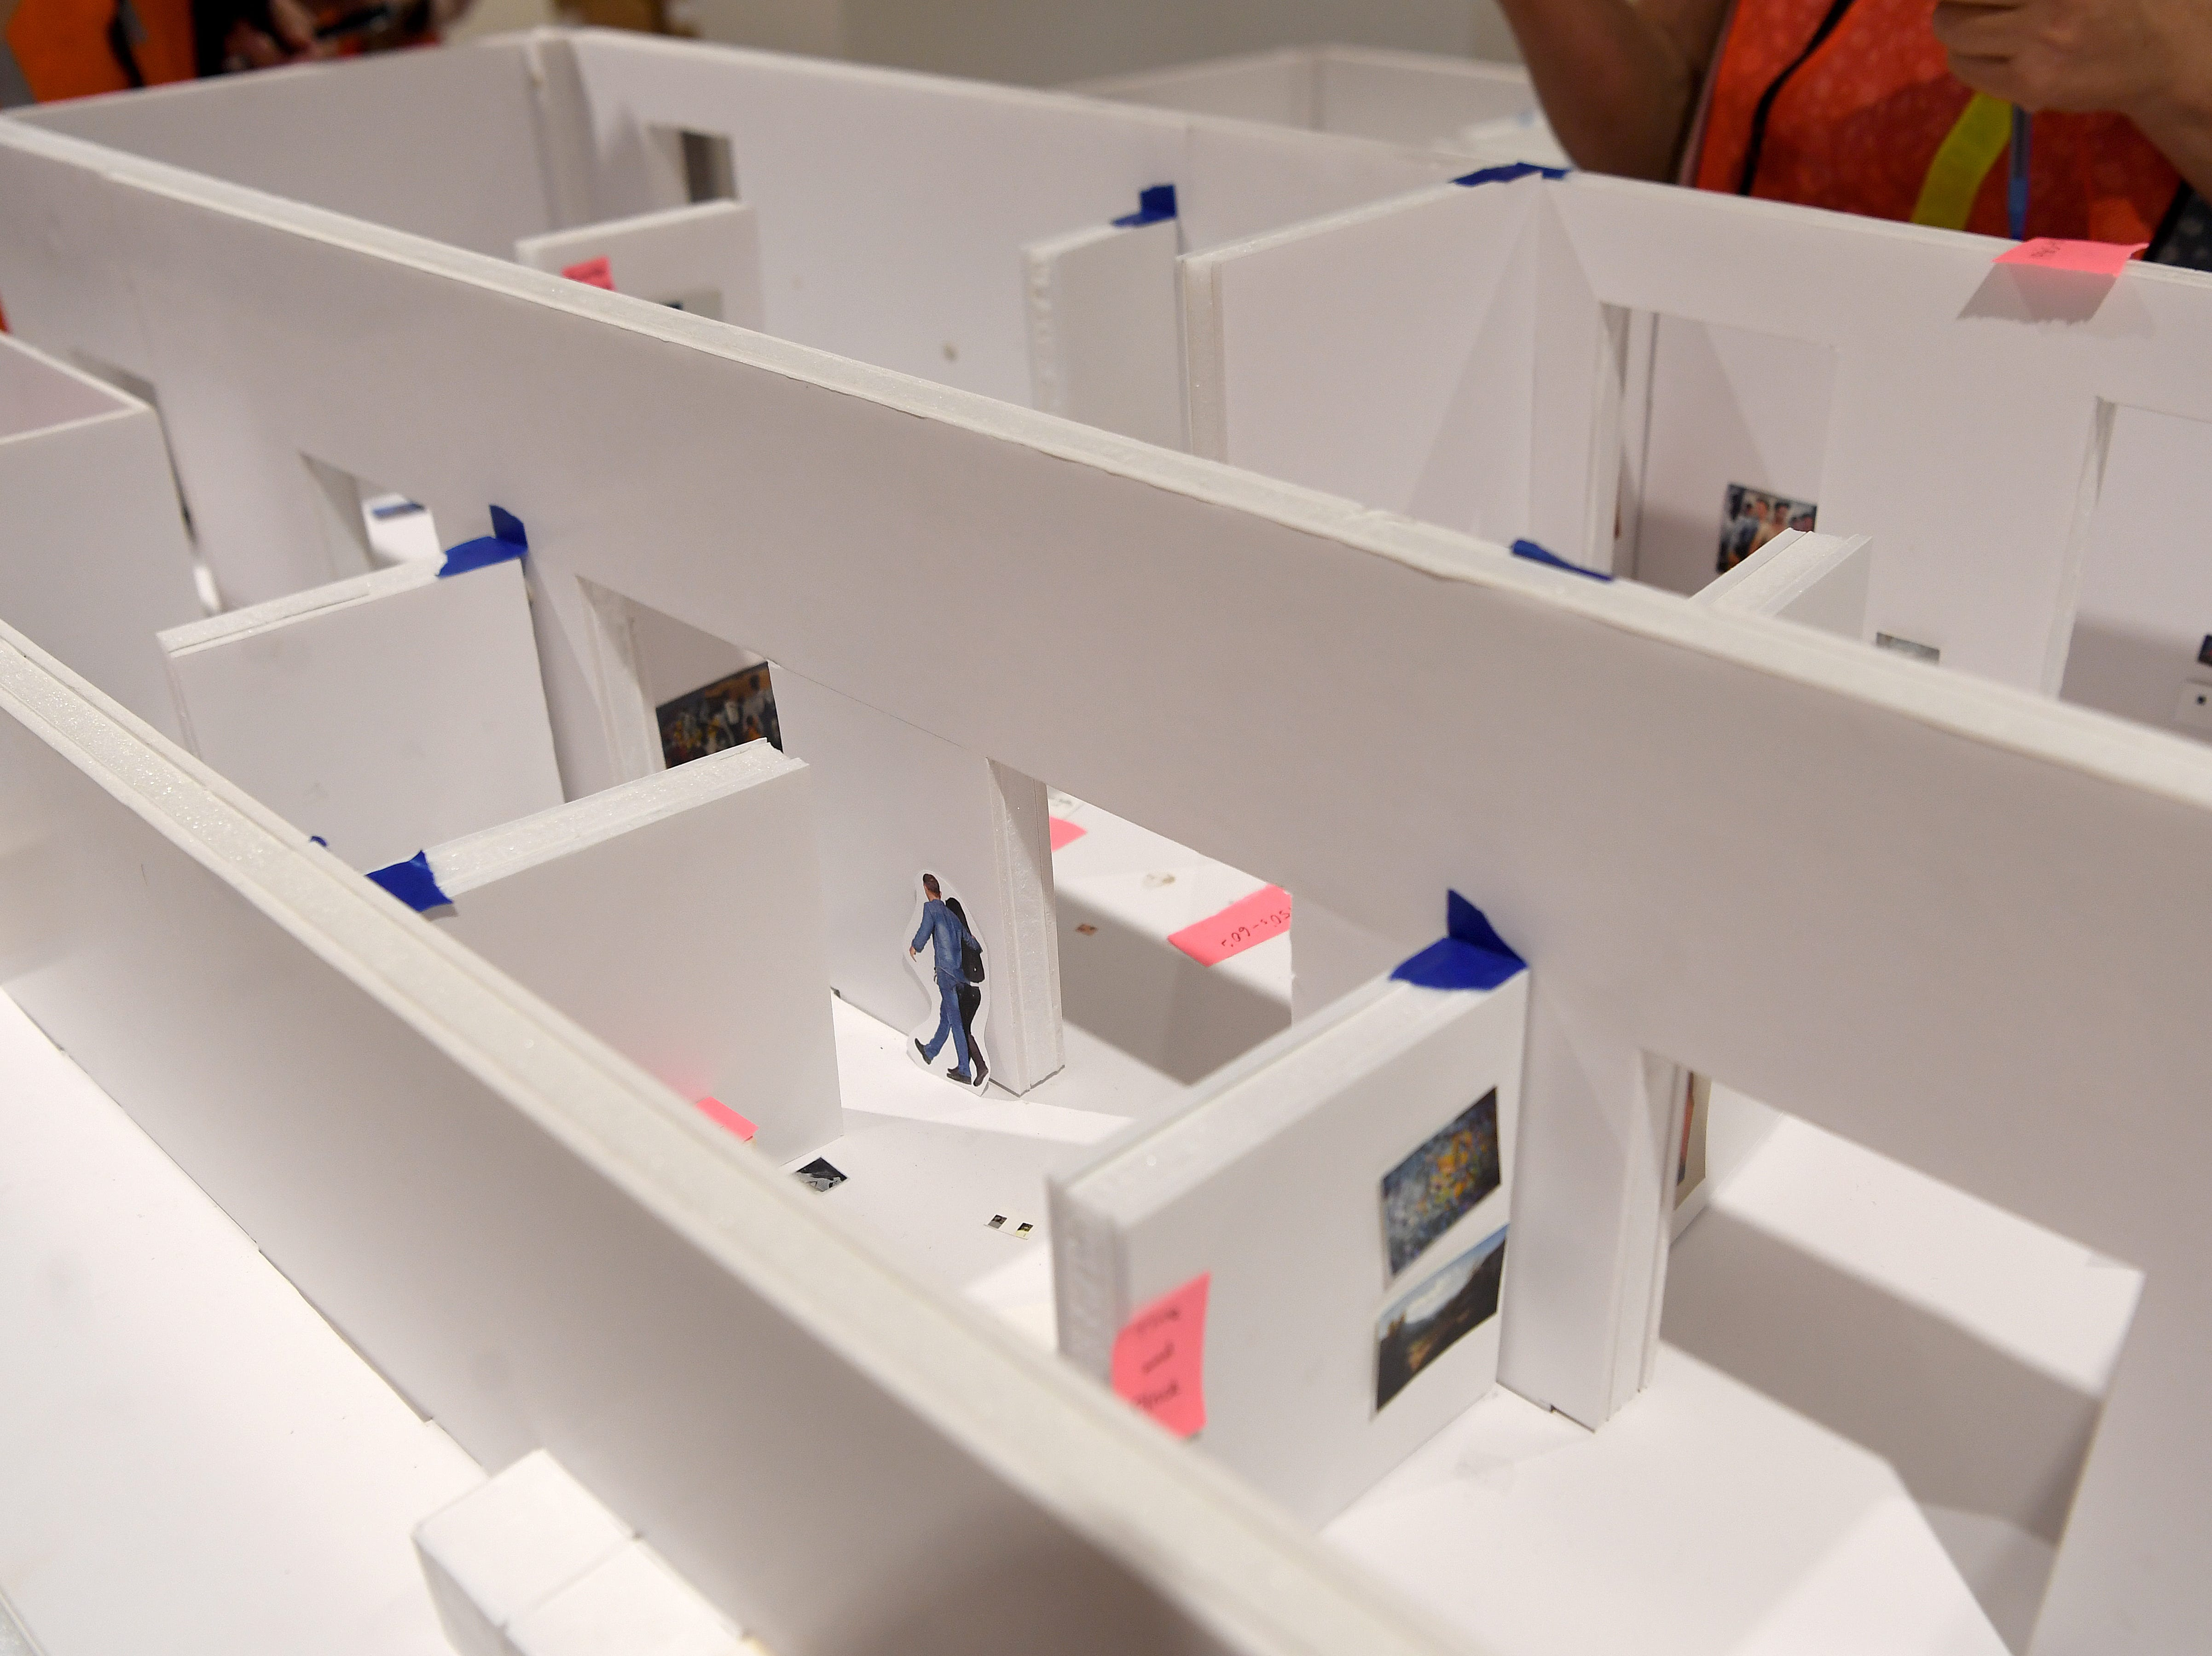 A scale model of the collection hall allows Asheville Art Museum curators to decide where pieces of art will be displayed when construction is complete.